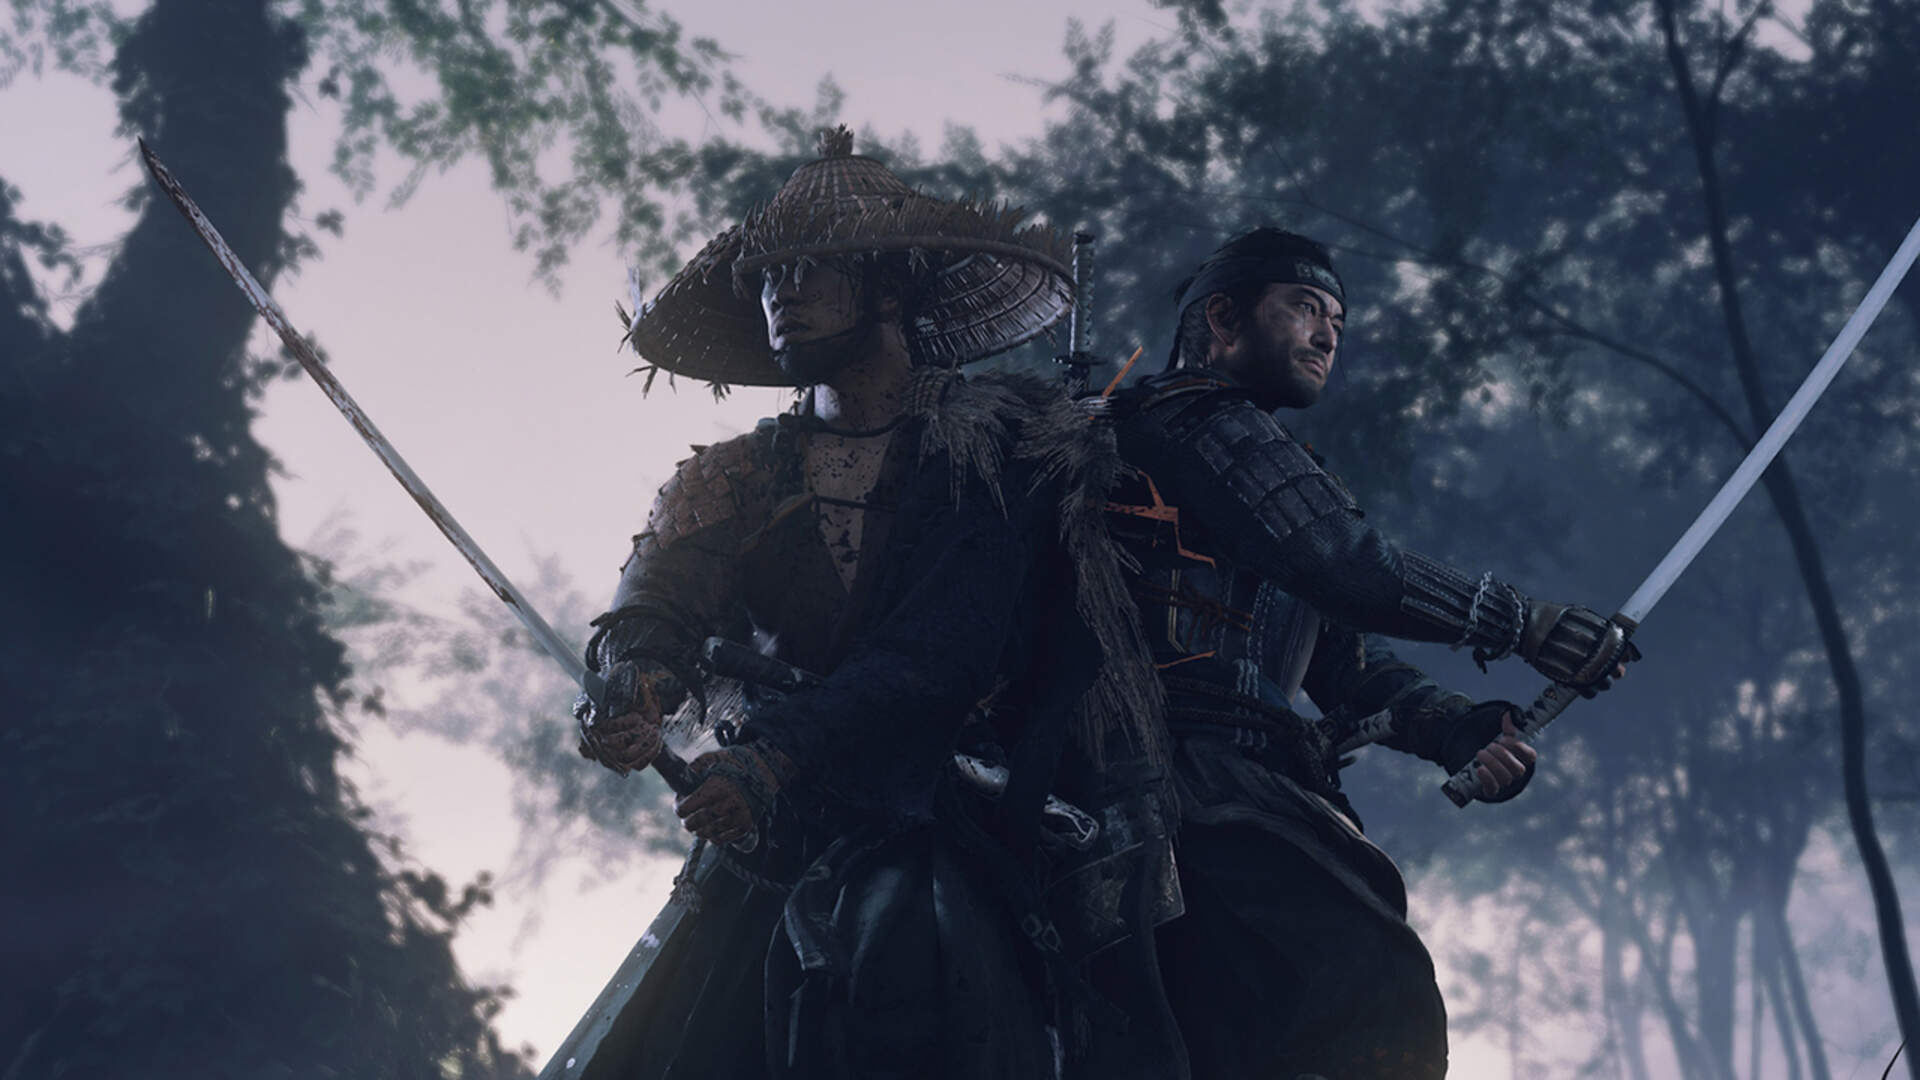 https://cdn.gamer-network.net/2020/usgamer/Ghost-of-Tsushima_Screenshot8.jpg/EG11/thumbnail/1920x1080/format/jpg/quality/65/ghost-of-tsushima-flexibility-between-samurai-and-stealth-abilities-sucker-punch.jpg